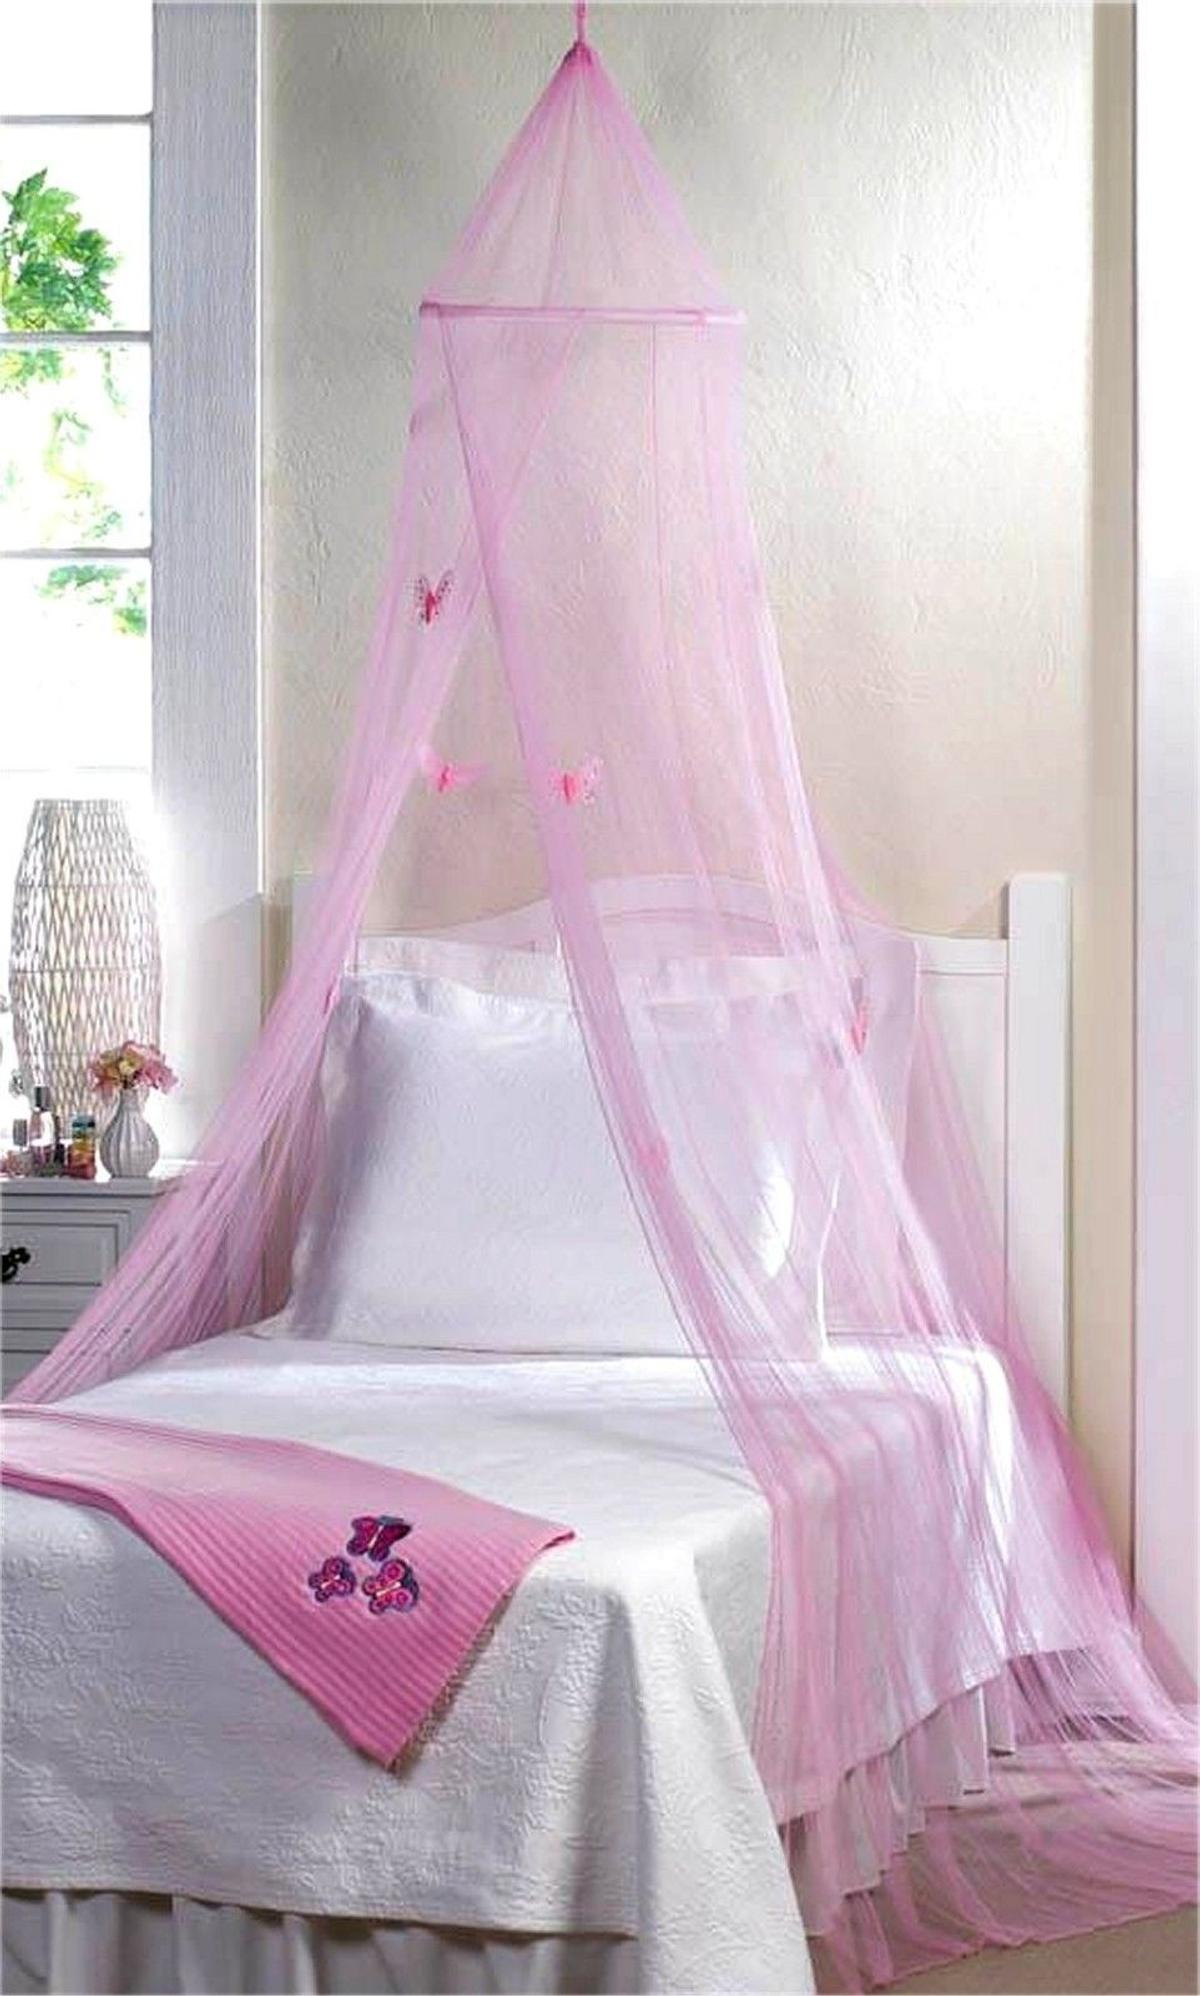 Net Pink Bryne Ikea Bed Canopy In Rm17 Grays For 2 50 For Sale Shpock